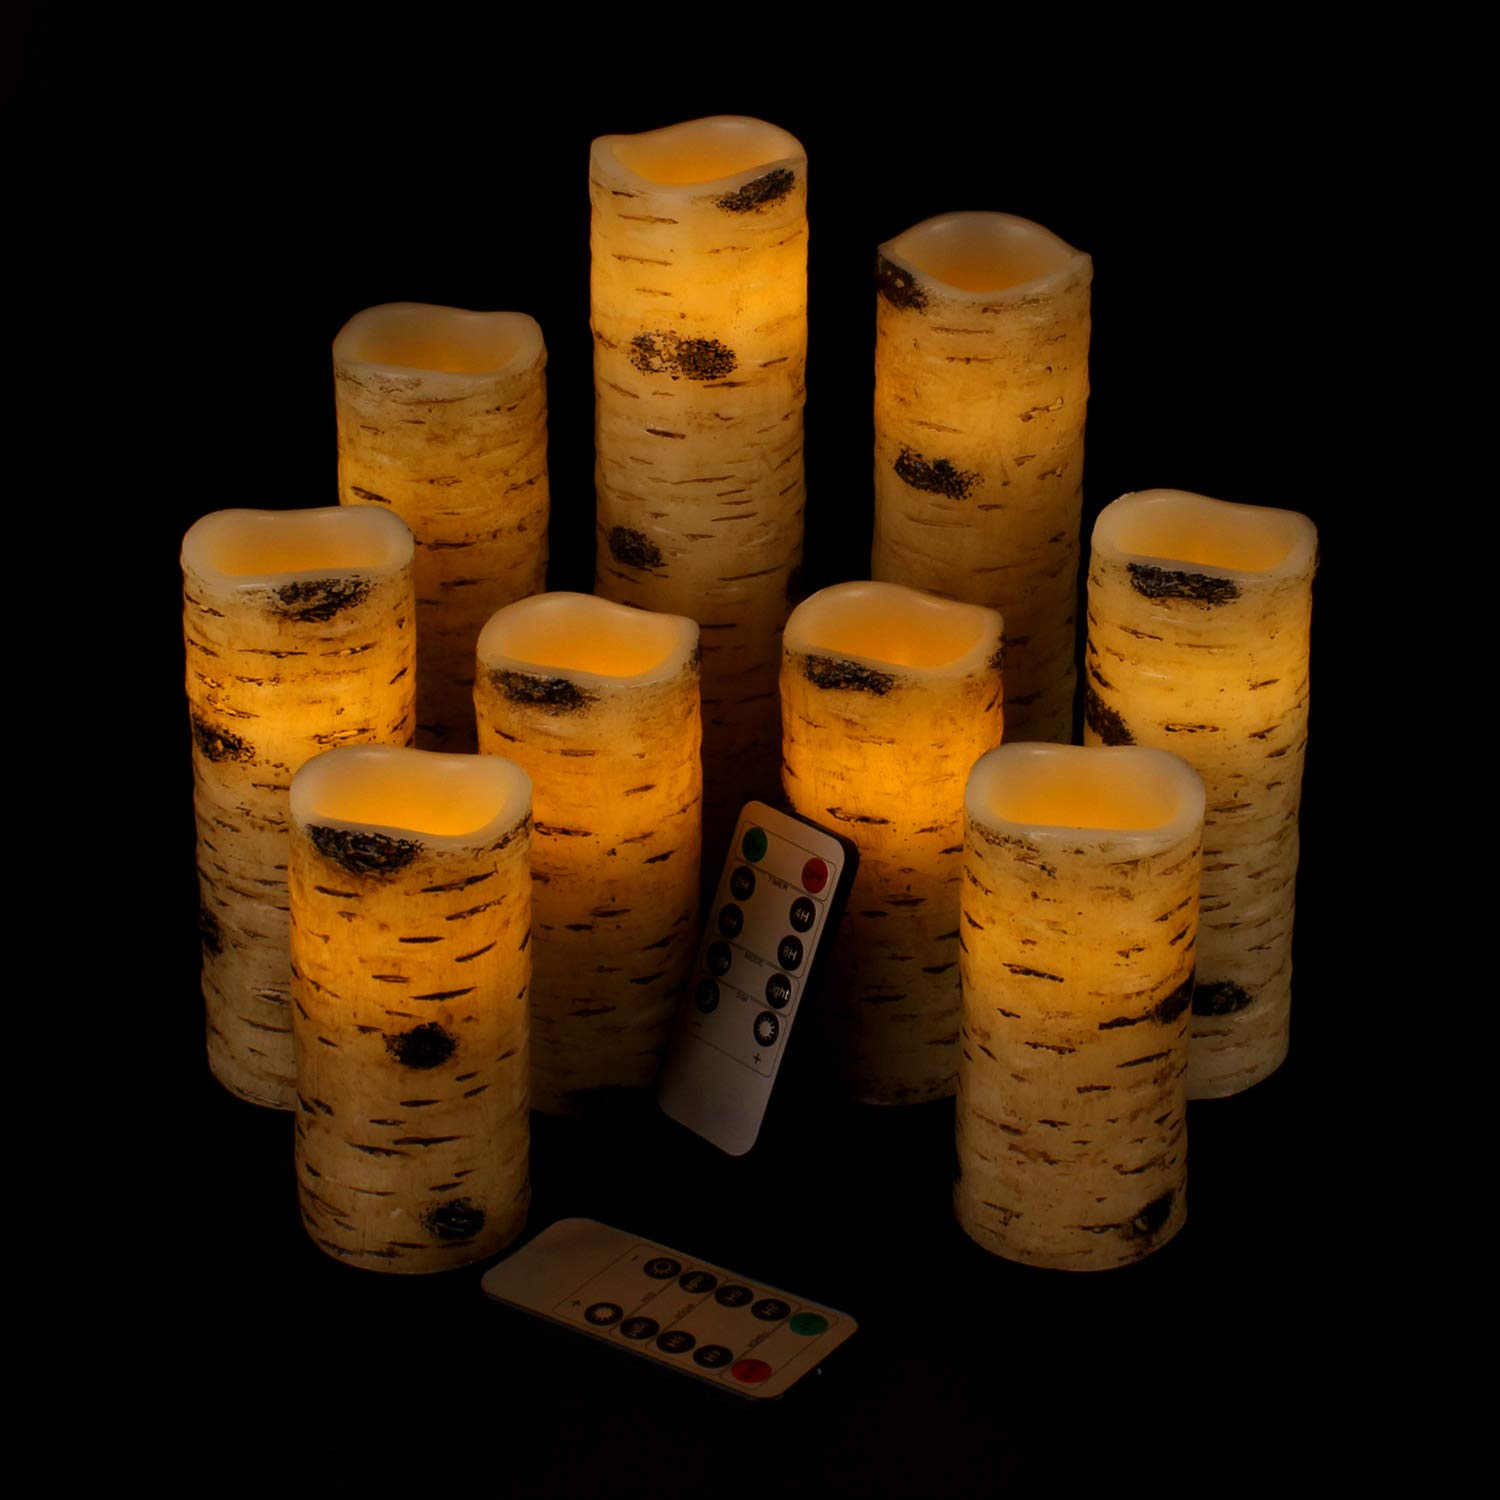 Vinkor Flameless Candles Battery Operated Candles Birch Effect 4'' 5'' 6'' 7'' 8'' 9'' Set of 9 Real Wax Pillar LED Candles with 10-Key Remote Control 2/4/6/8 Hours Timer by Vinkor